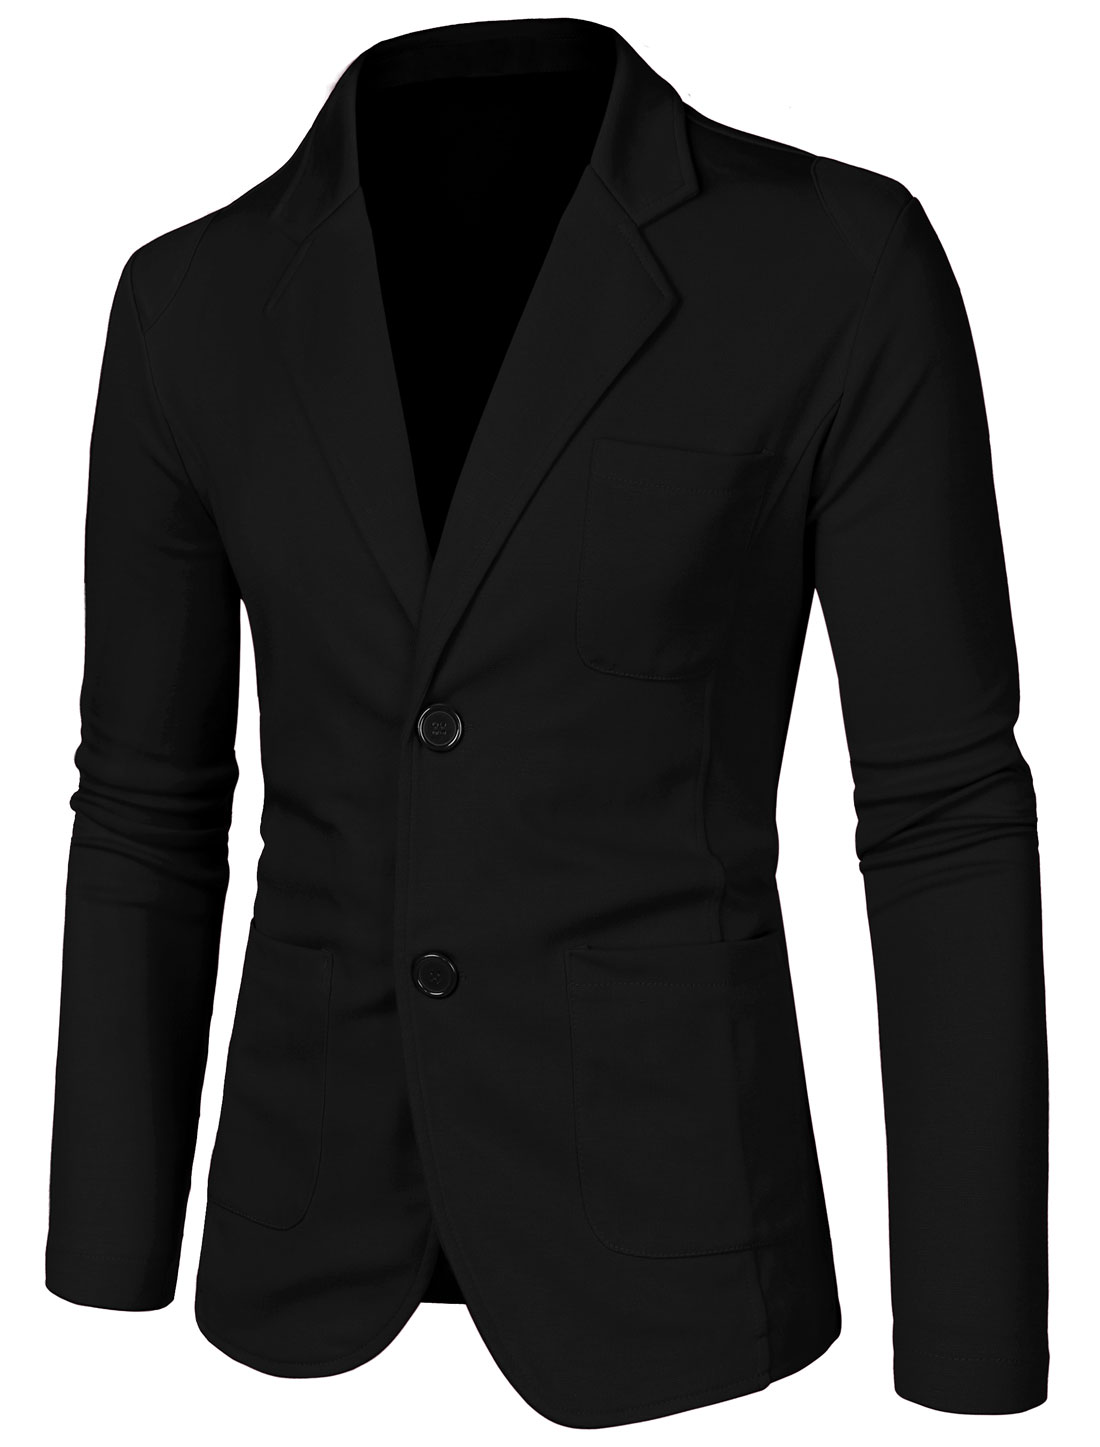 Men Two Buttons Closure One Chest Pocket Trendy Thin Blazer Black S